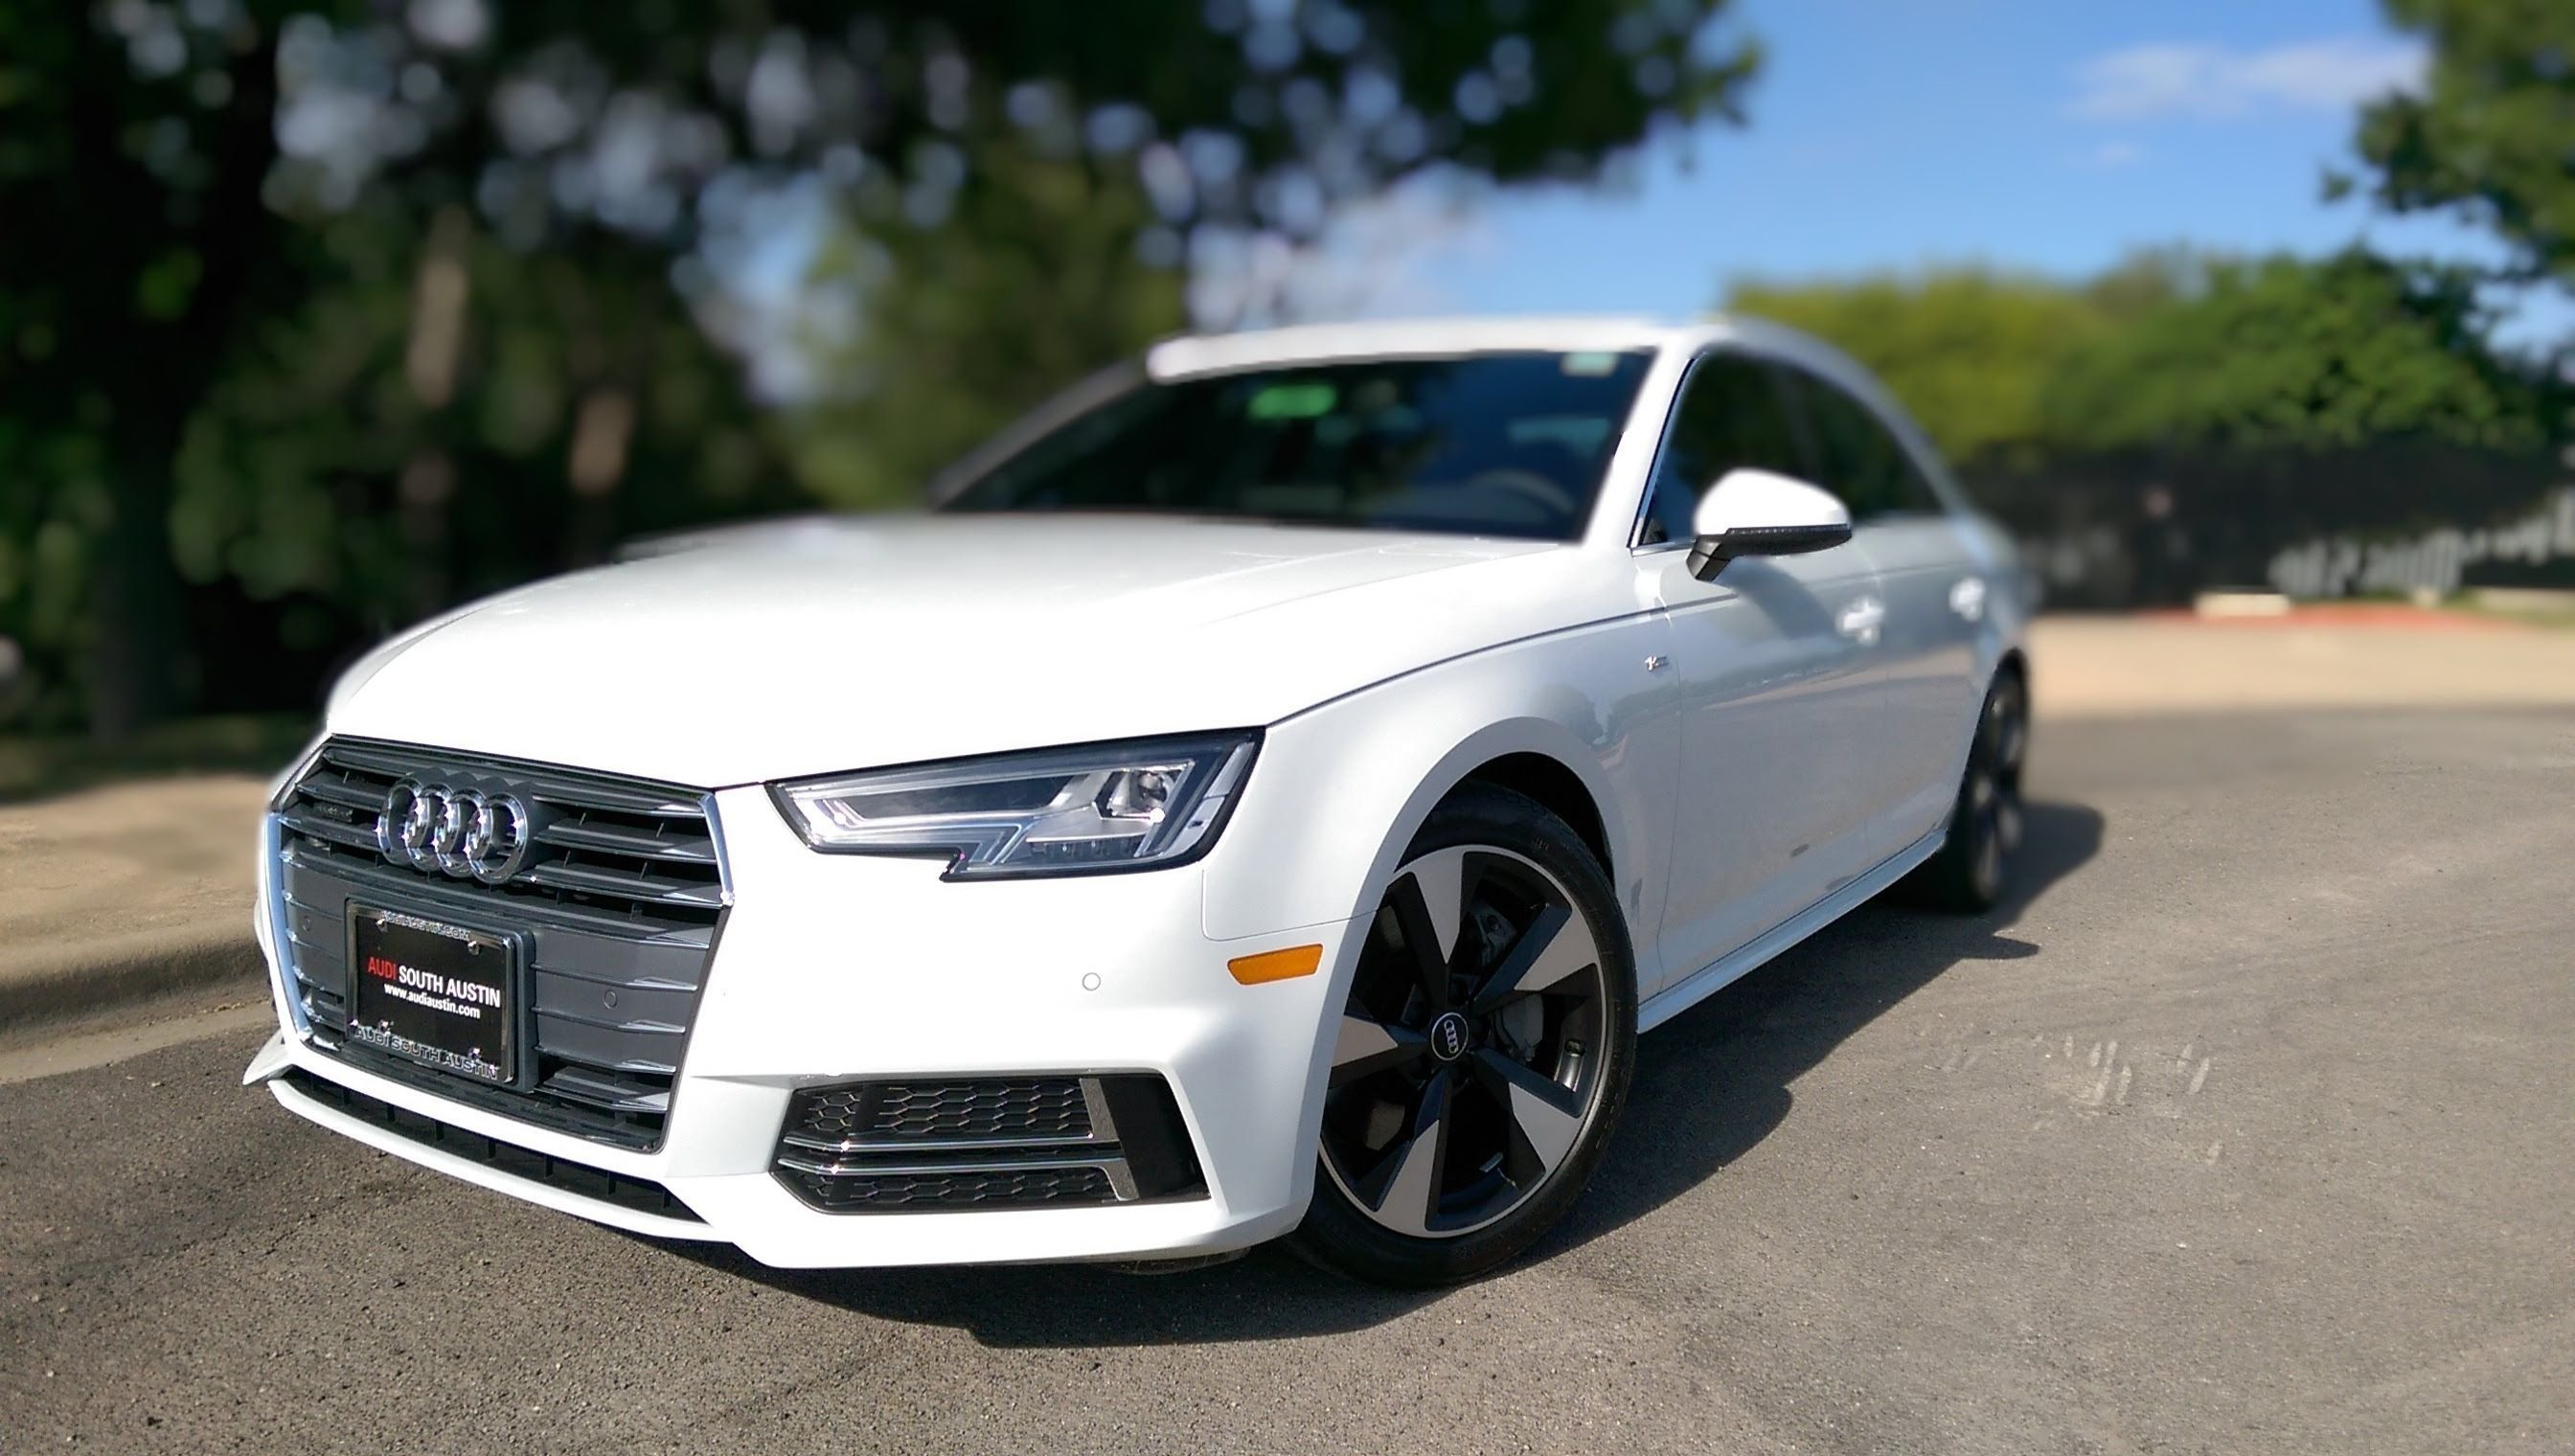 Latest Tag For Audi A4 Price 2017 Audi A4 With 9X20 Mb Design Free Download